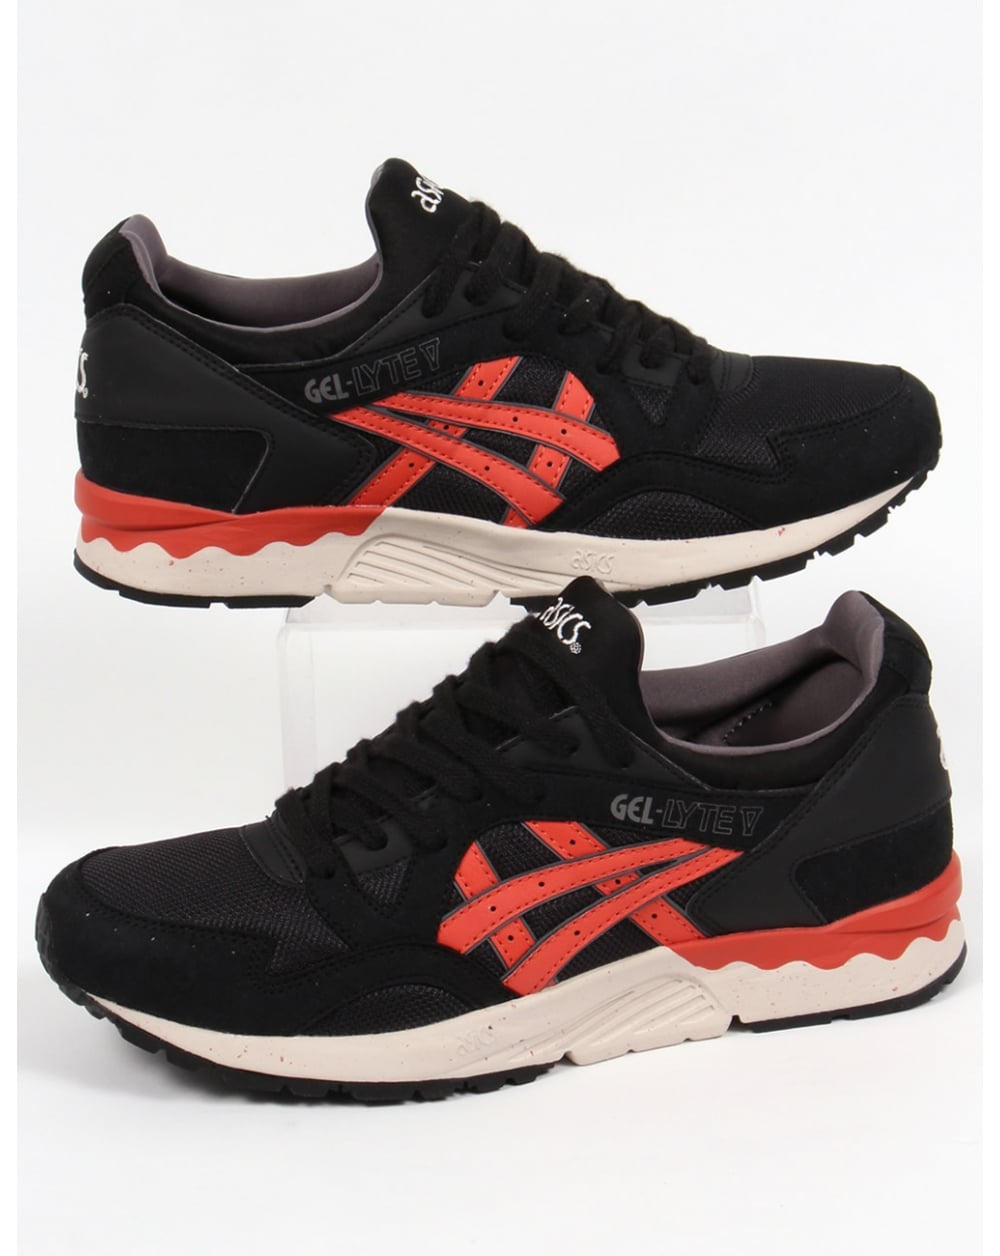 outlet store 5256e b6302 Asics Gel Lyte V Trainers Black/chili Red